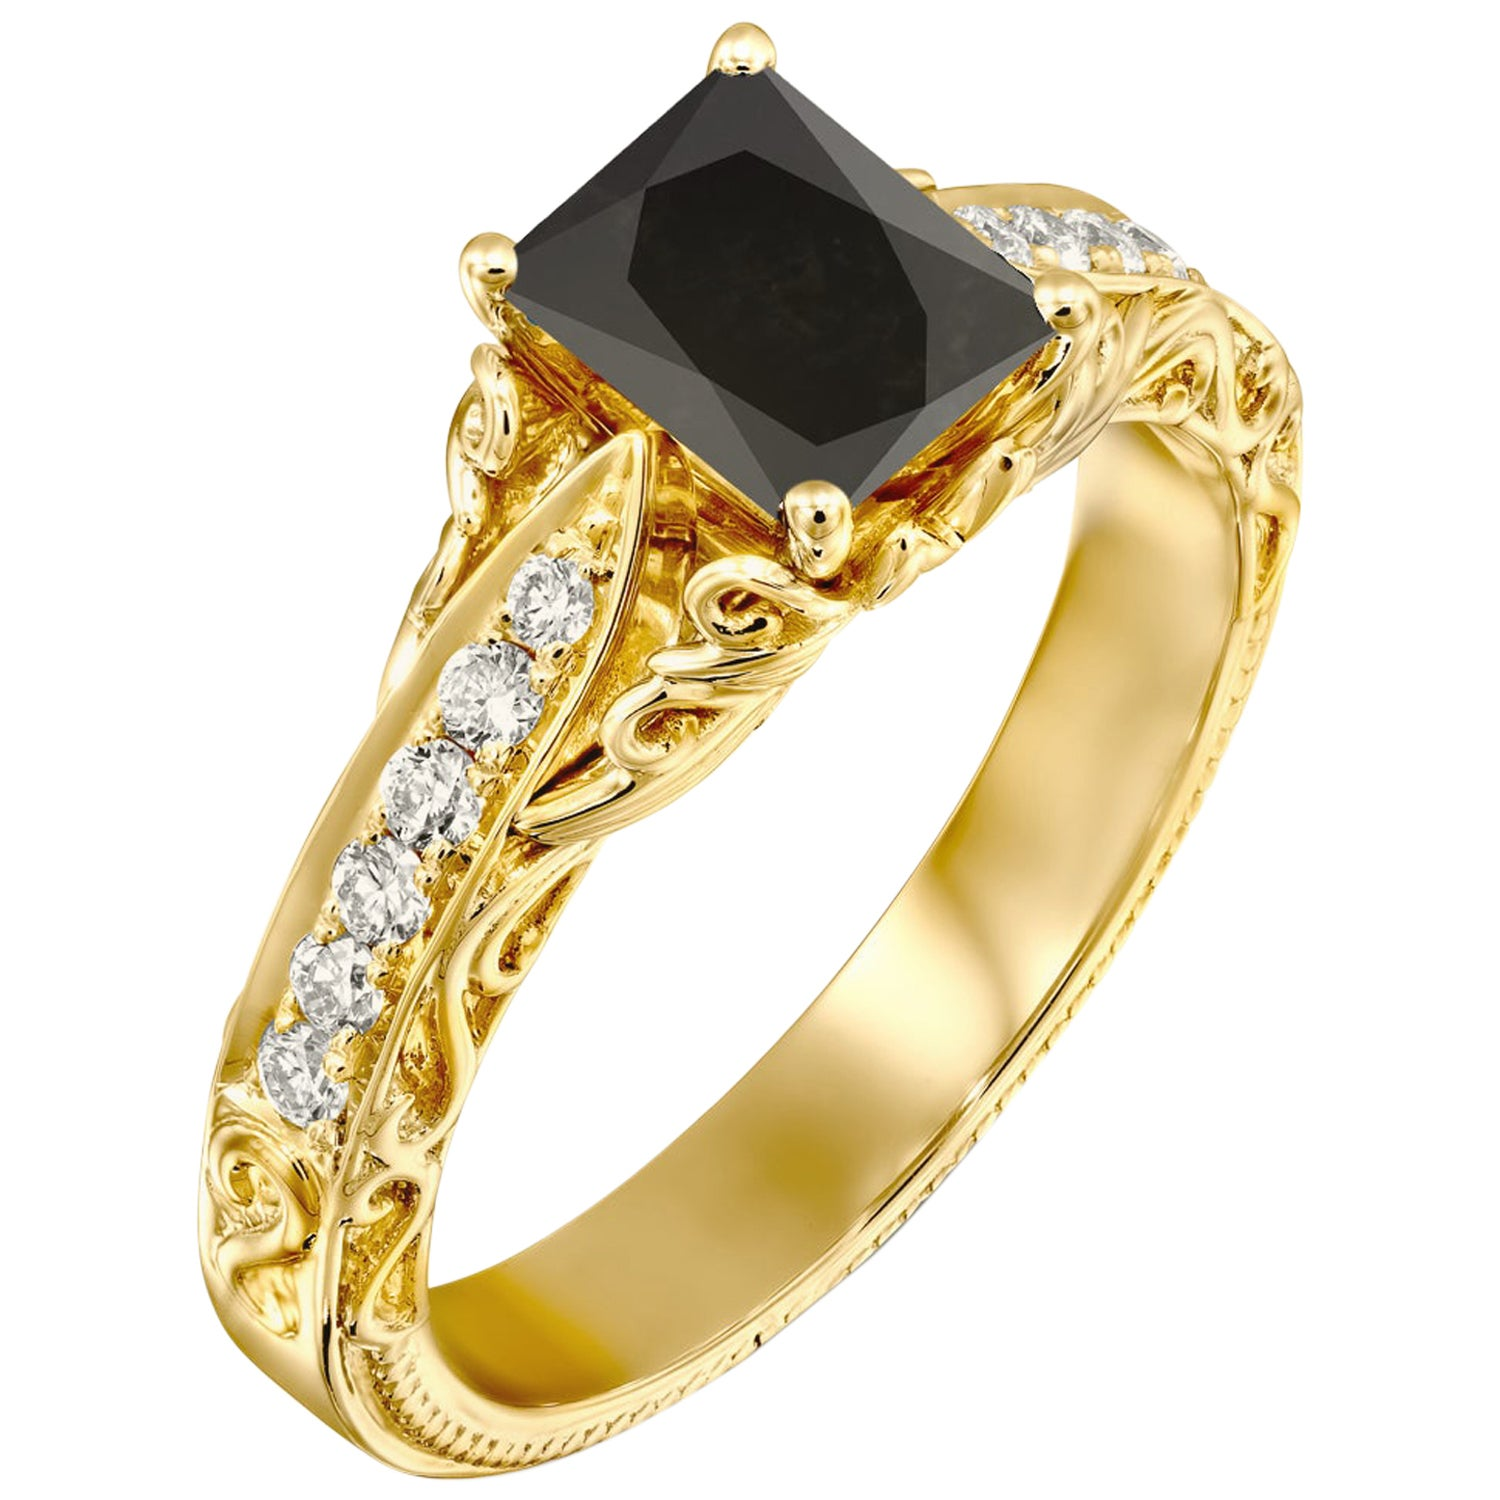 1 1/4 Carat 14 Karat Yellow Gold Certified Radiant Black Diamond Engagement Ring